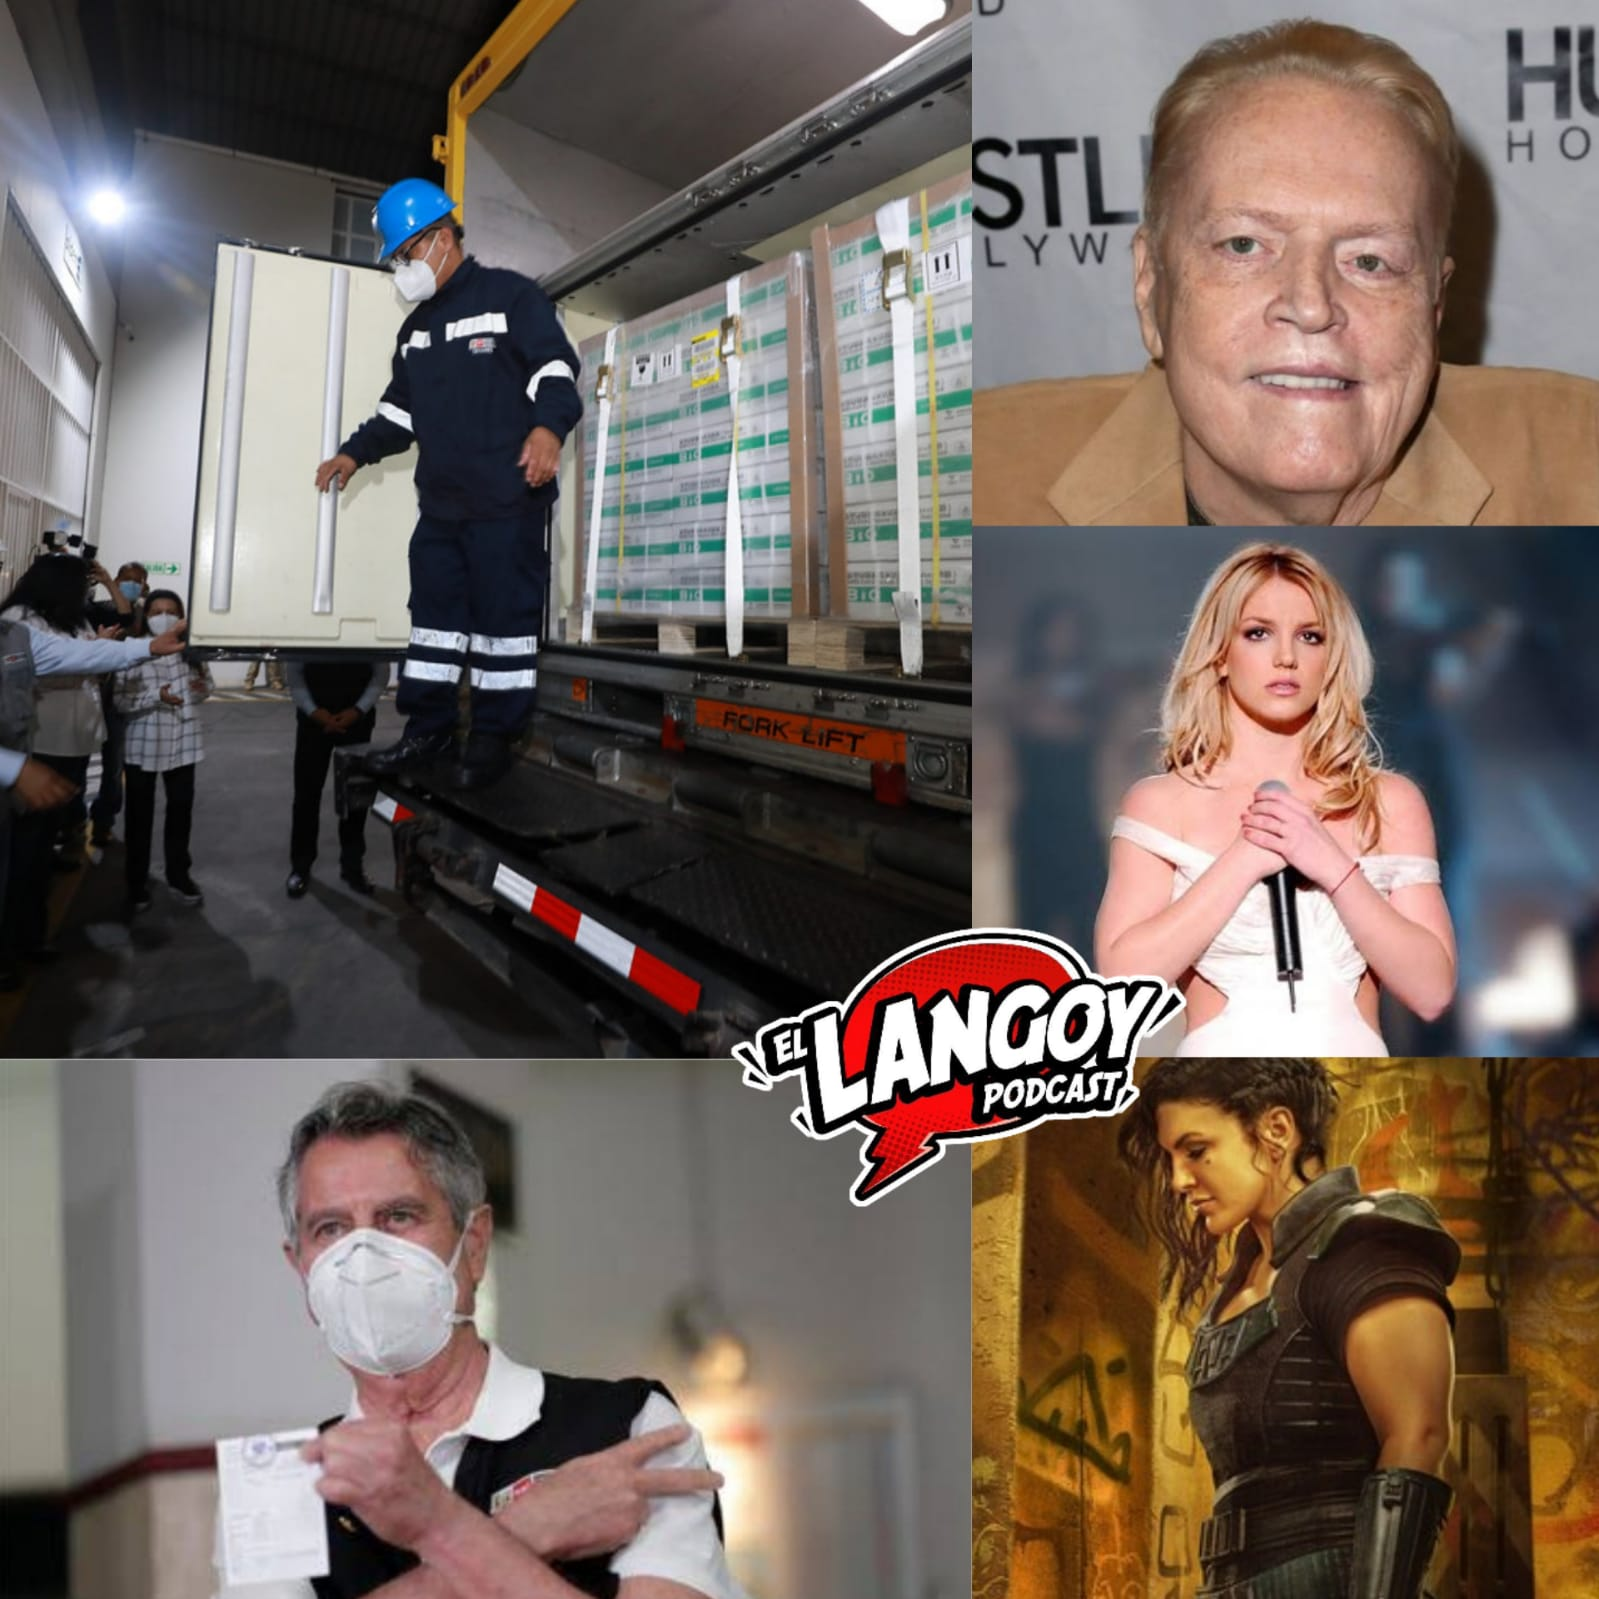 Podcast Vacunas Peru Lima El Langoy Larry Flynt The Last of Us Disney Plus Gobierno Sagasti